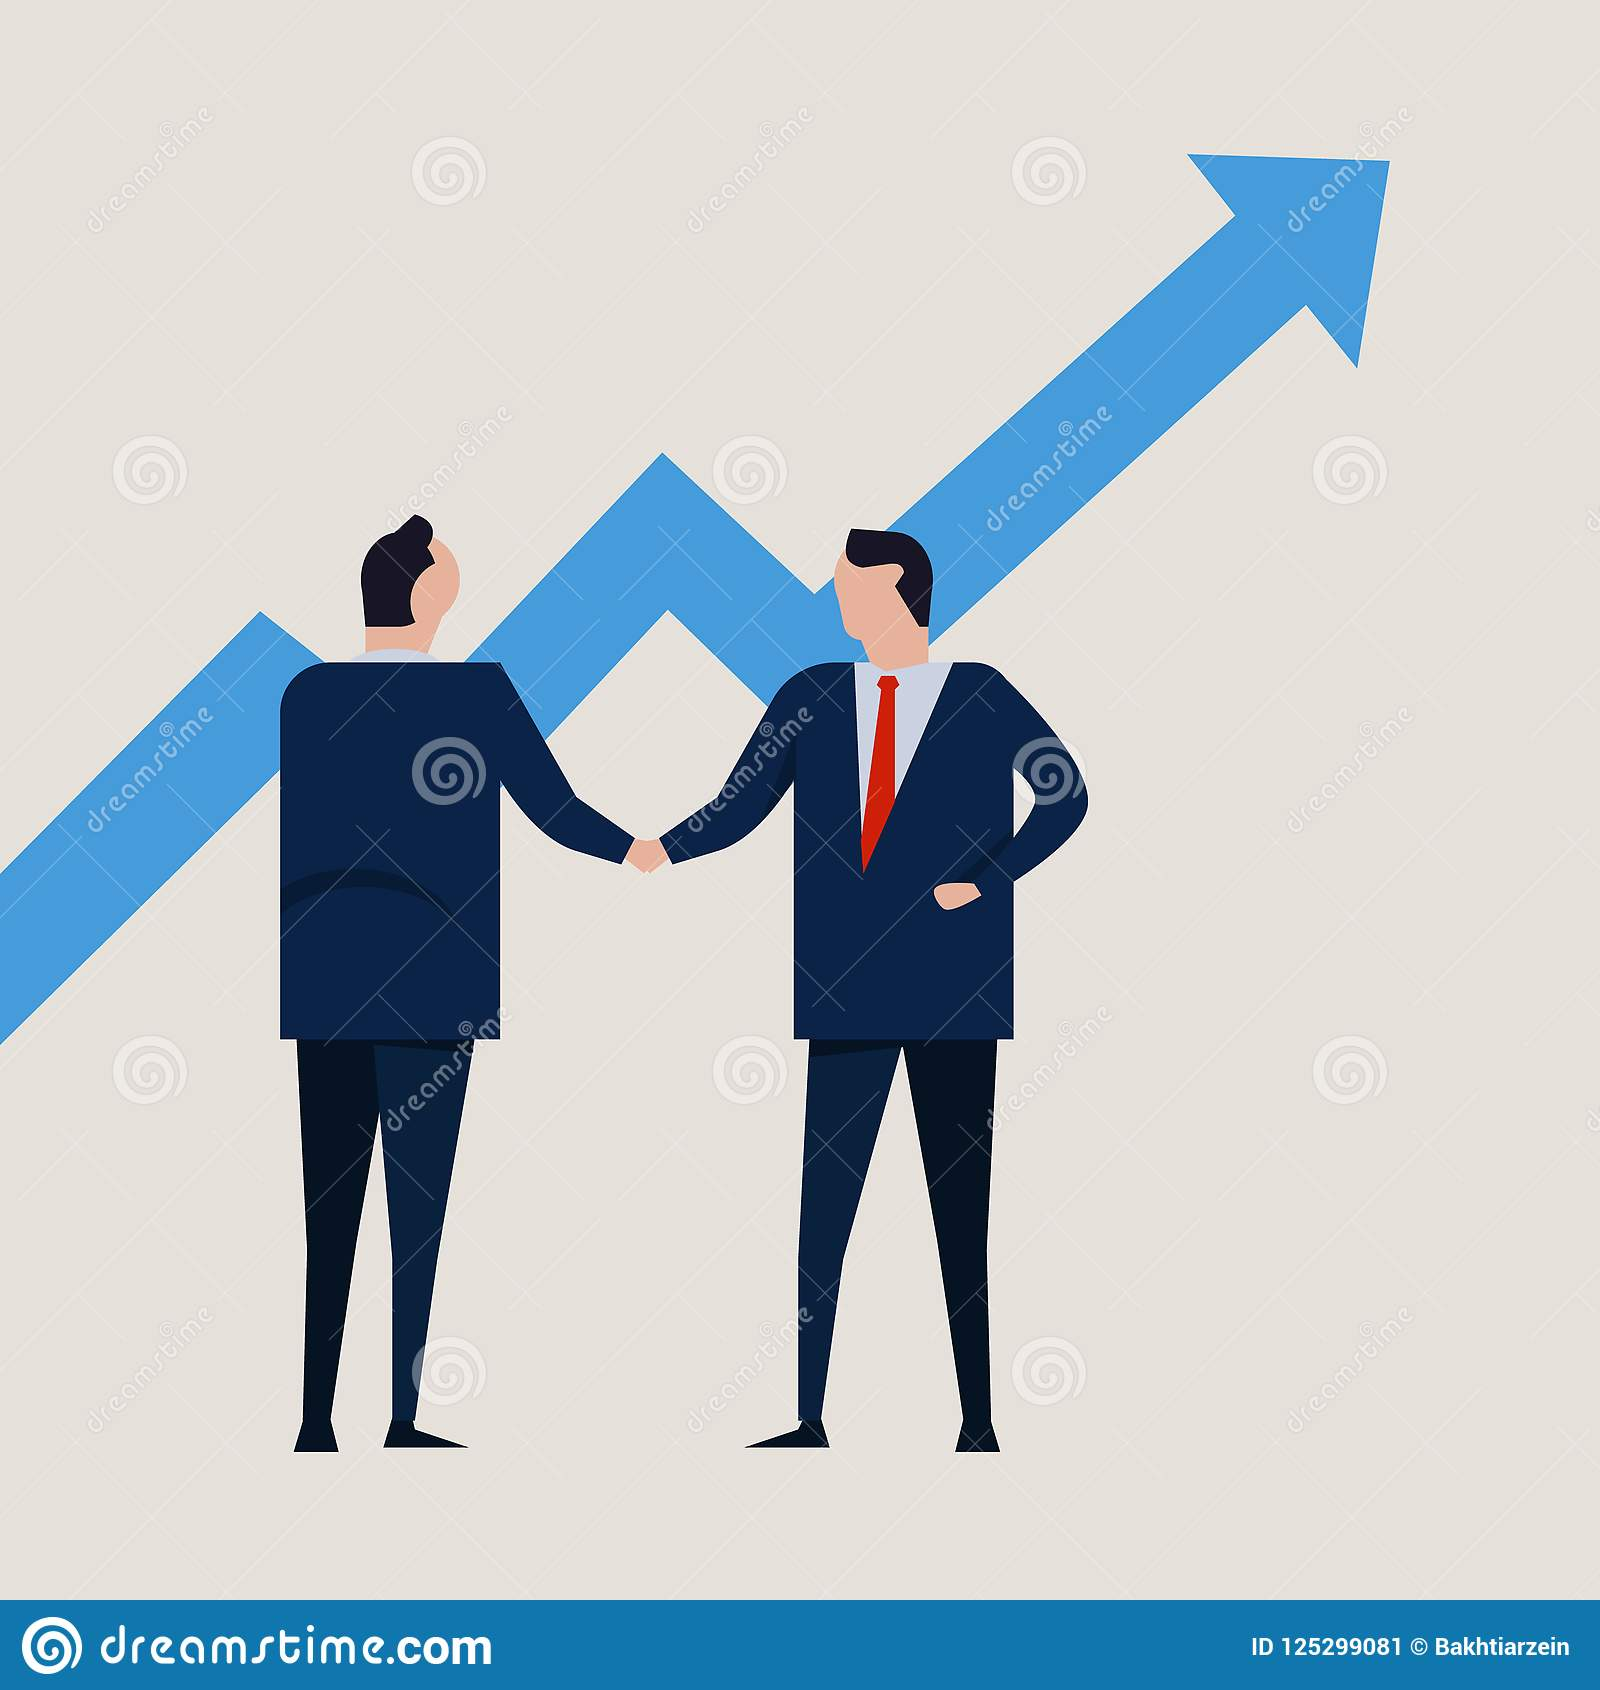 Growth chart going up. increase value investment. Business people agreement standing handshake wearing suite formal